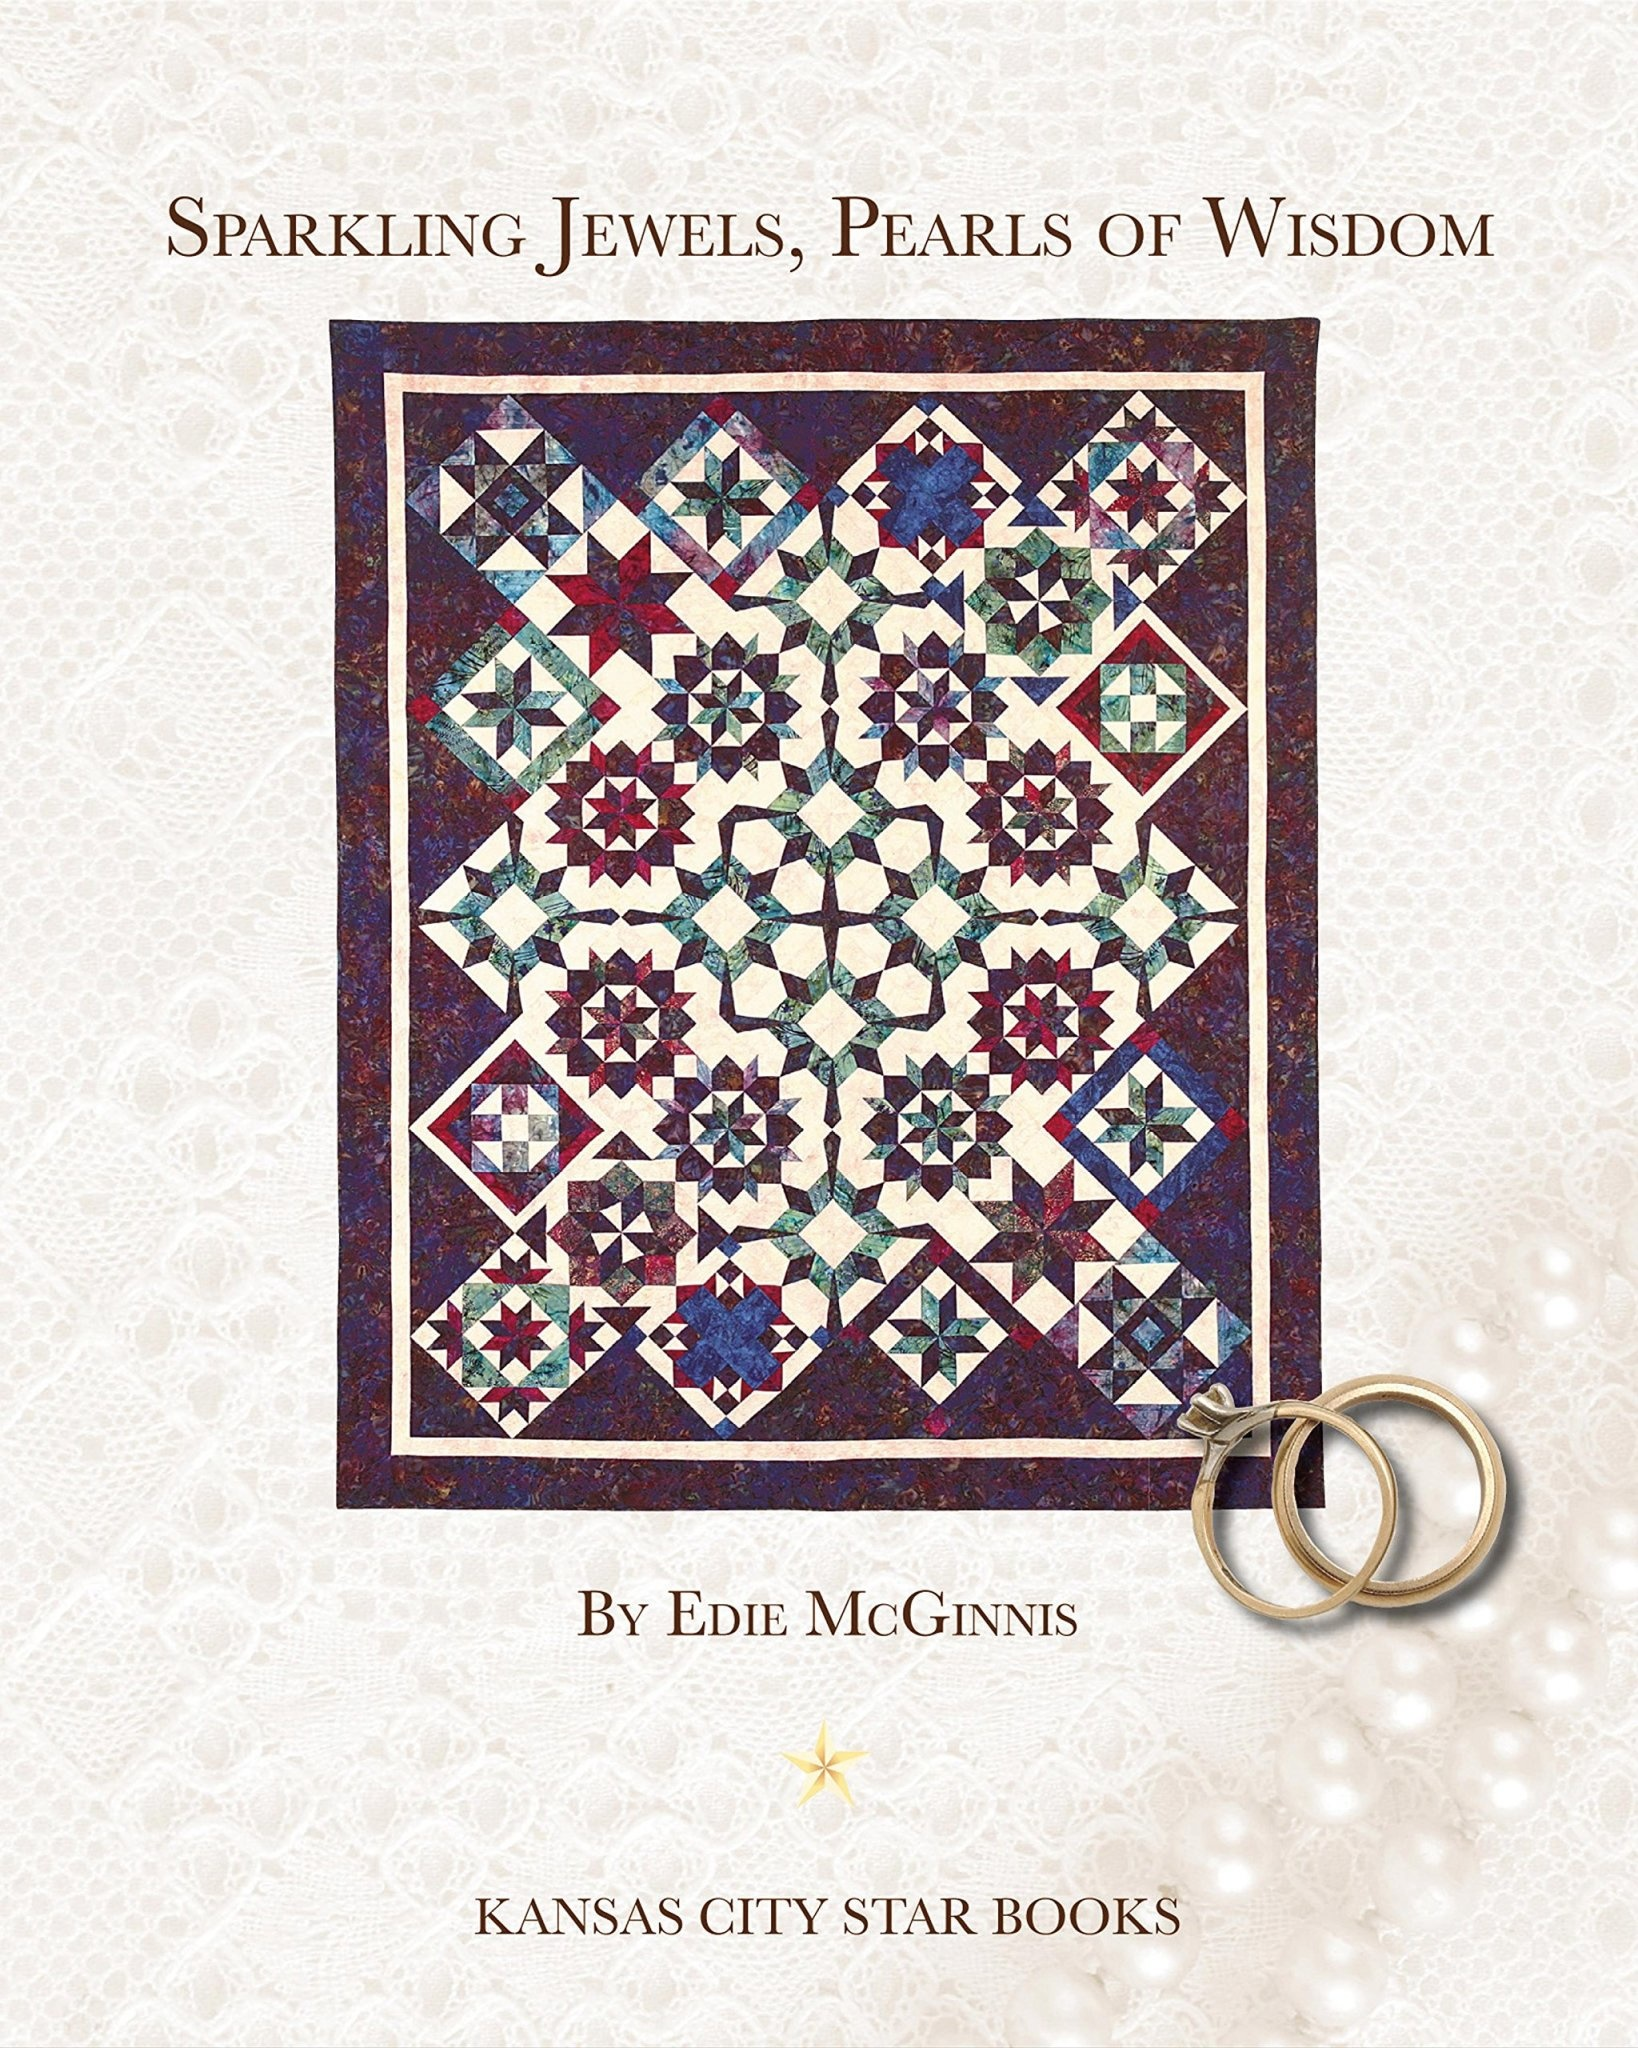 SPARKLY JEWELS, PEARLS OF WISDOM BOOK